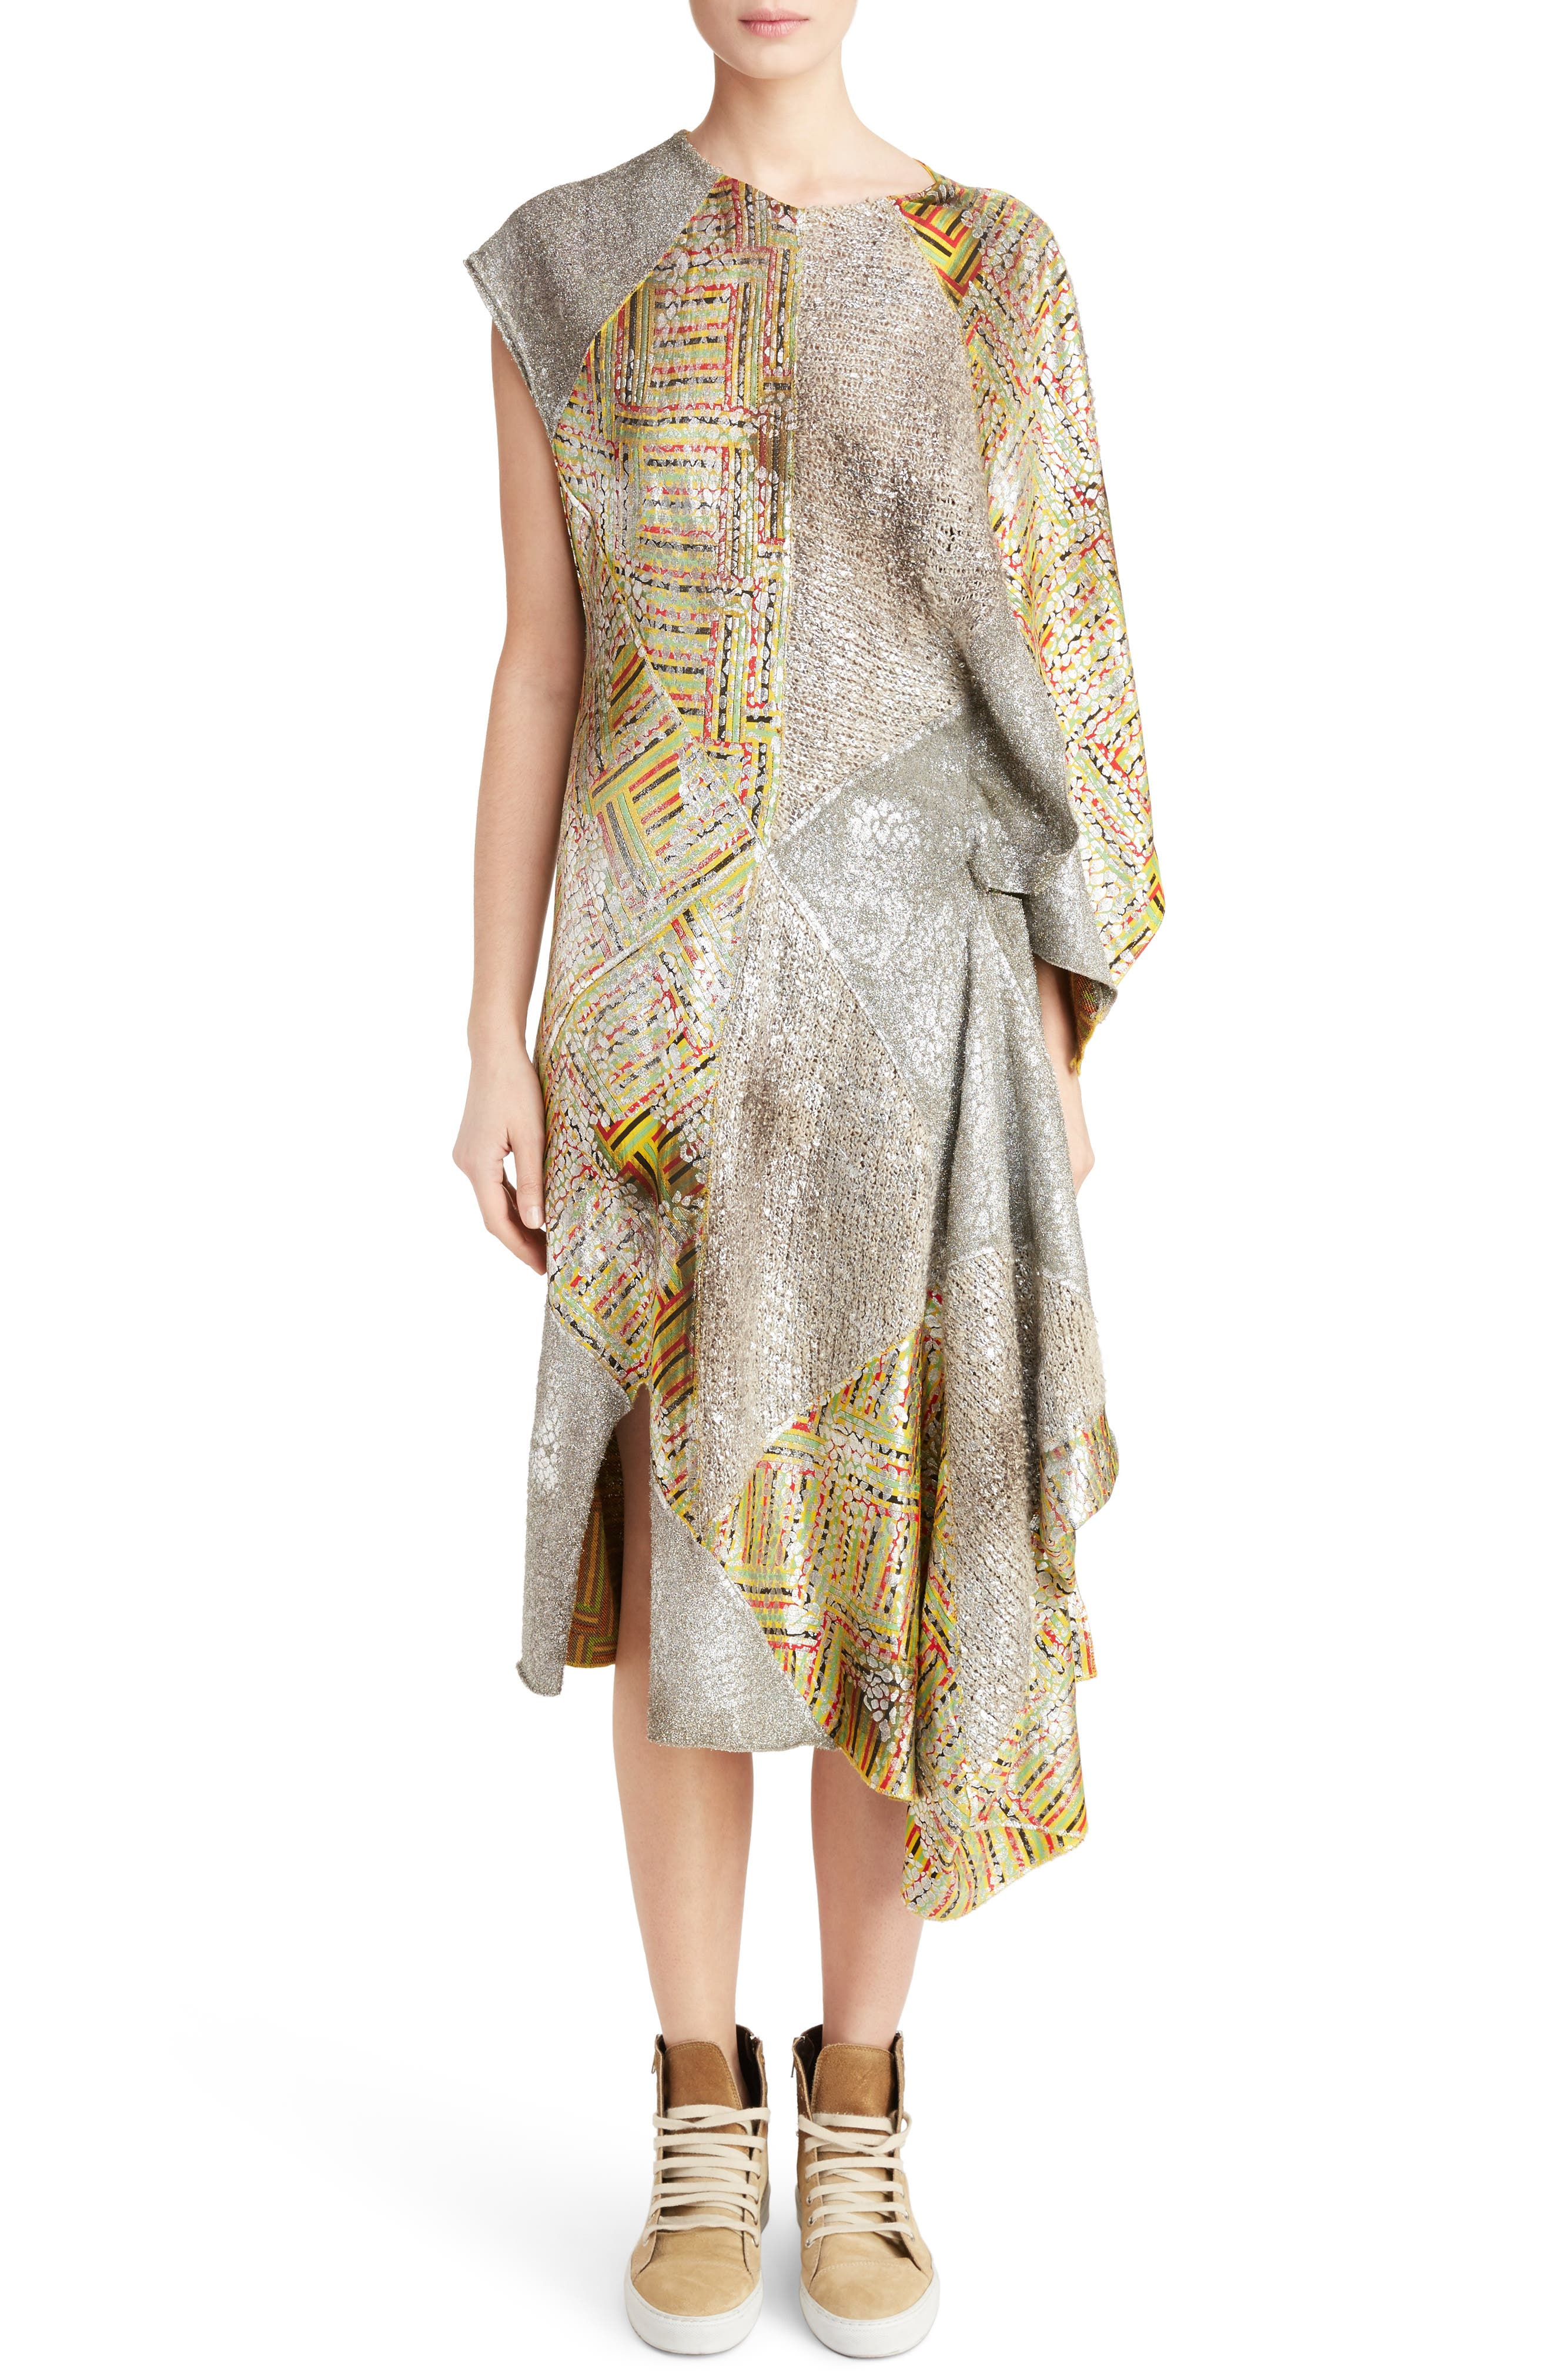 J.W.ANDERSON Geo Patterned Asymmetrical Draped Dress,                         Main,                         color, 040